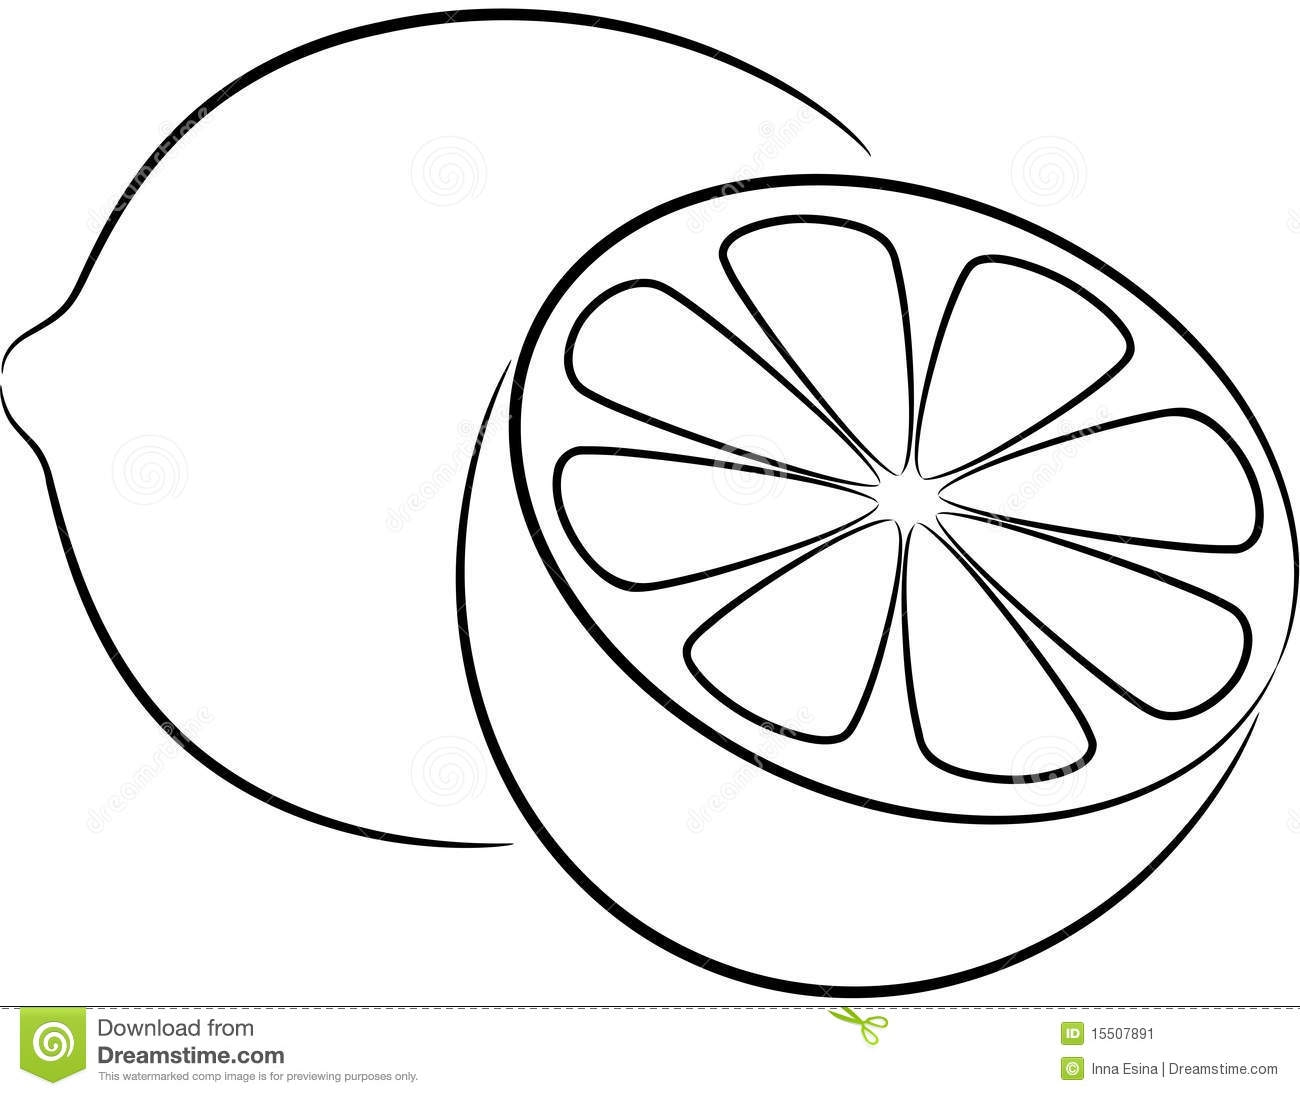 Lemon with leaf clipart black and white vector free library Lemon Clipart Black And White | Free download best Lemon Clipart ... vector free library